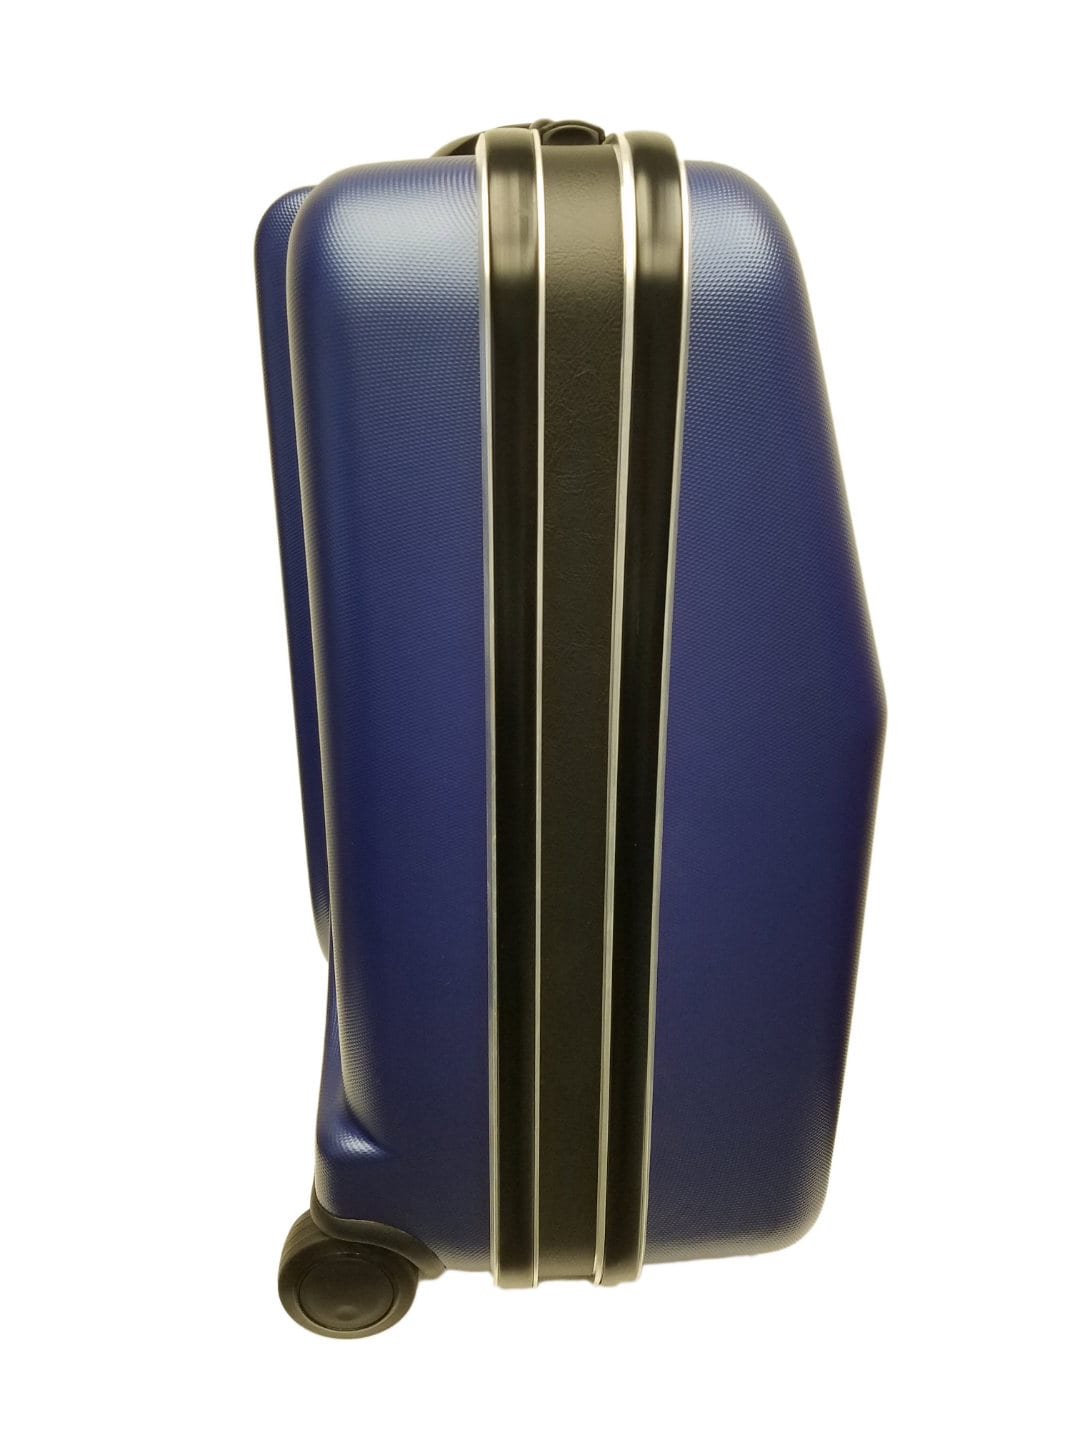 Excalibur TravelMate XR Accordion Case - Blue